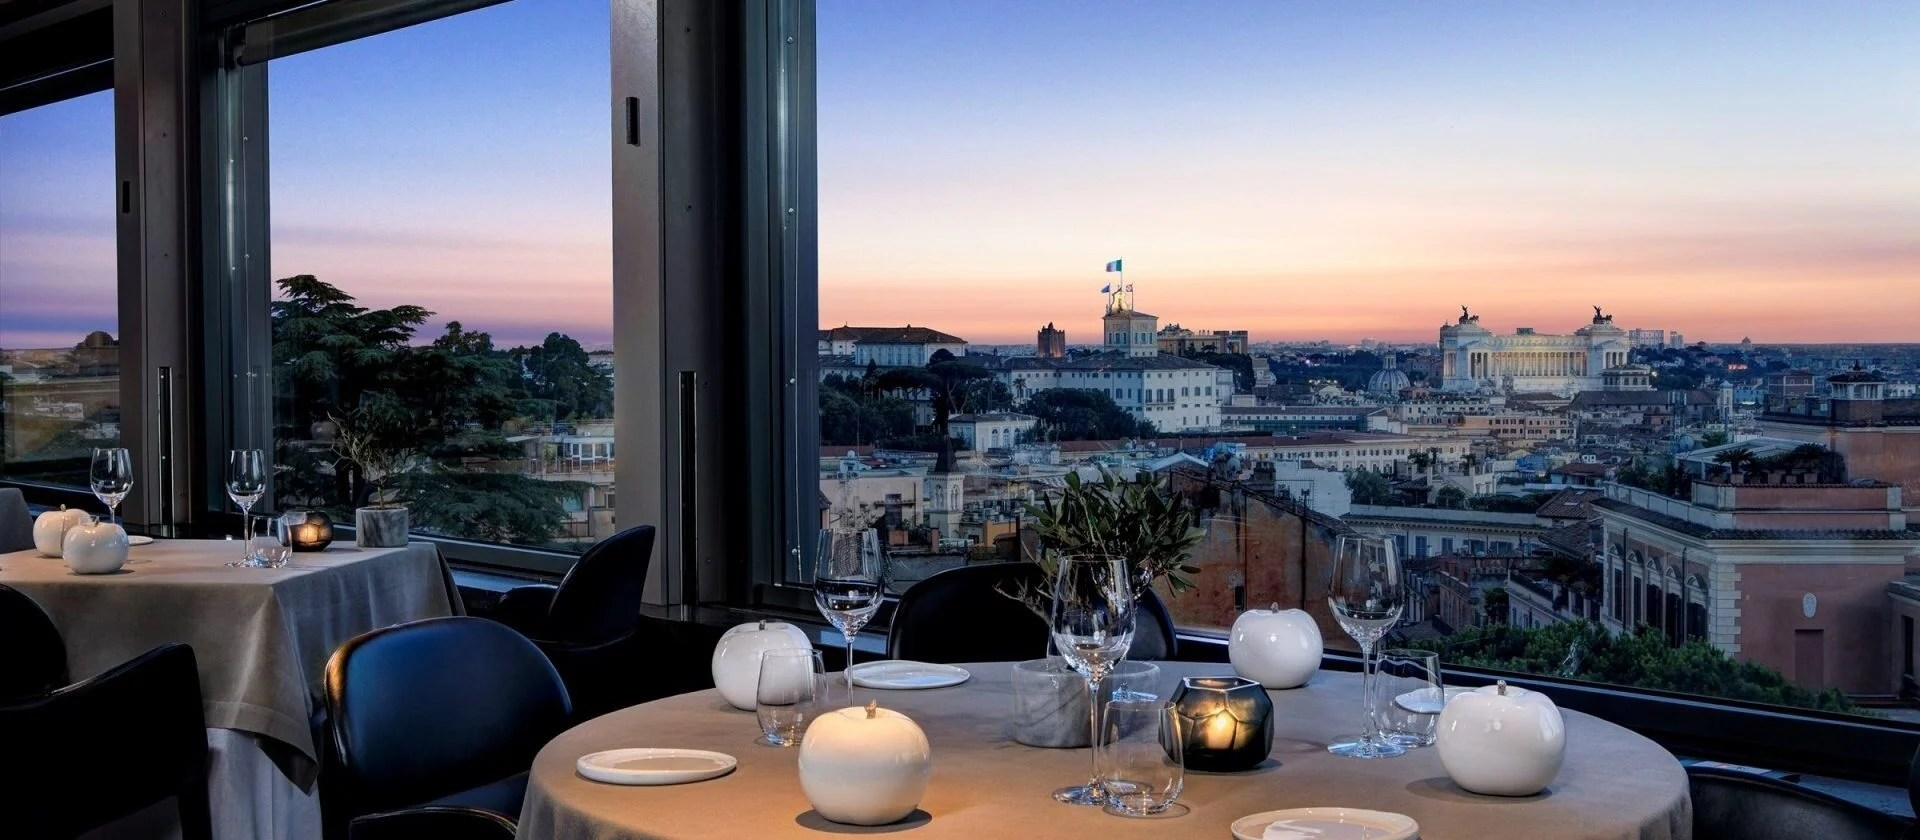 Luxury Terrazza  Rome  Hotel Eden  Dorchester Collection